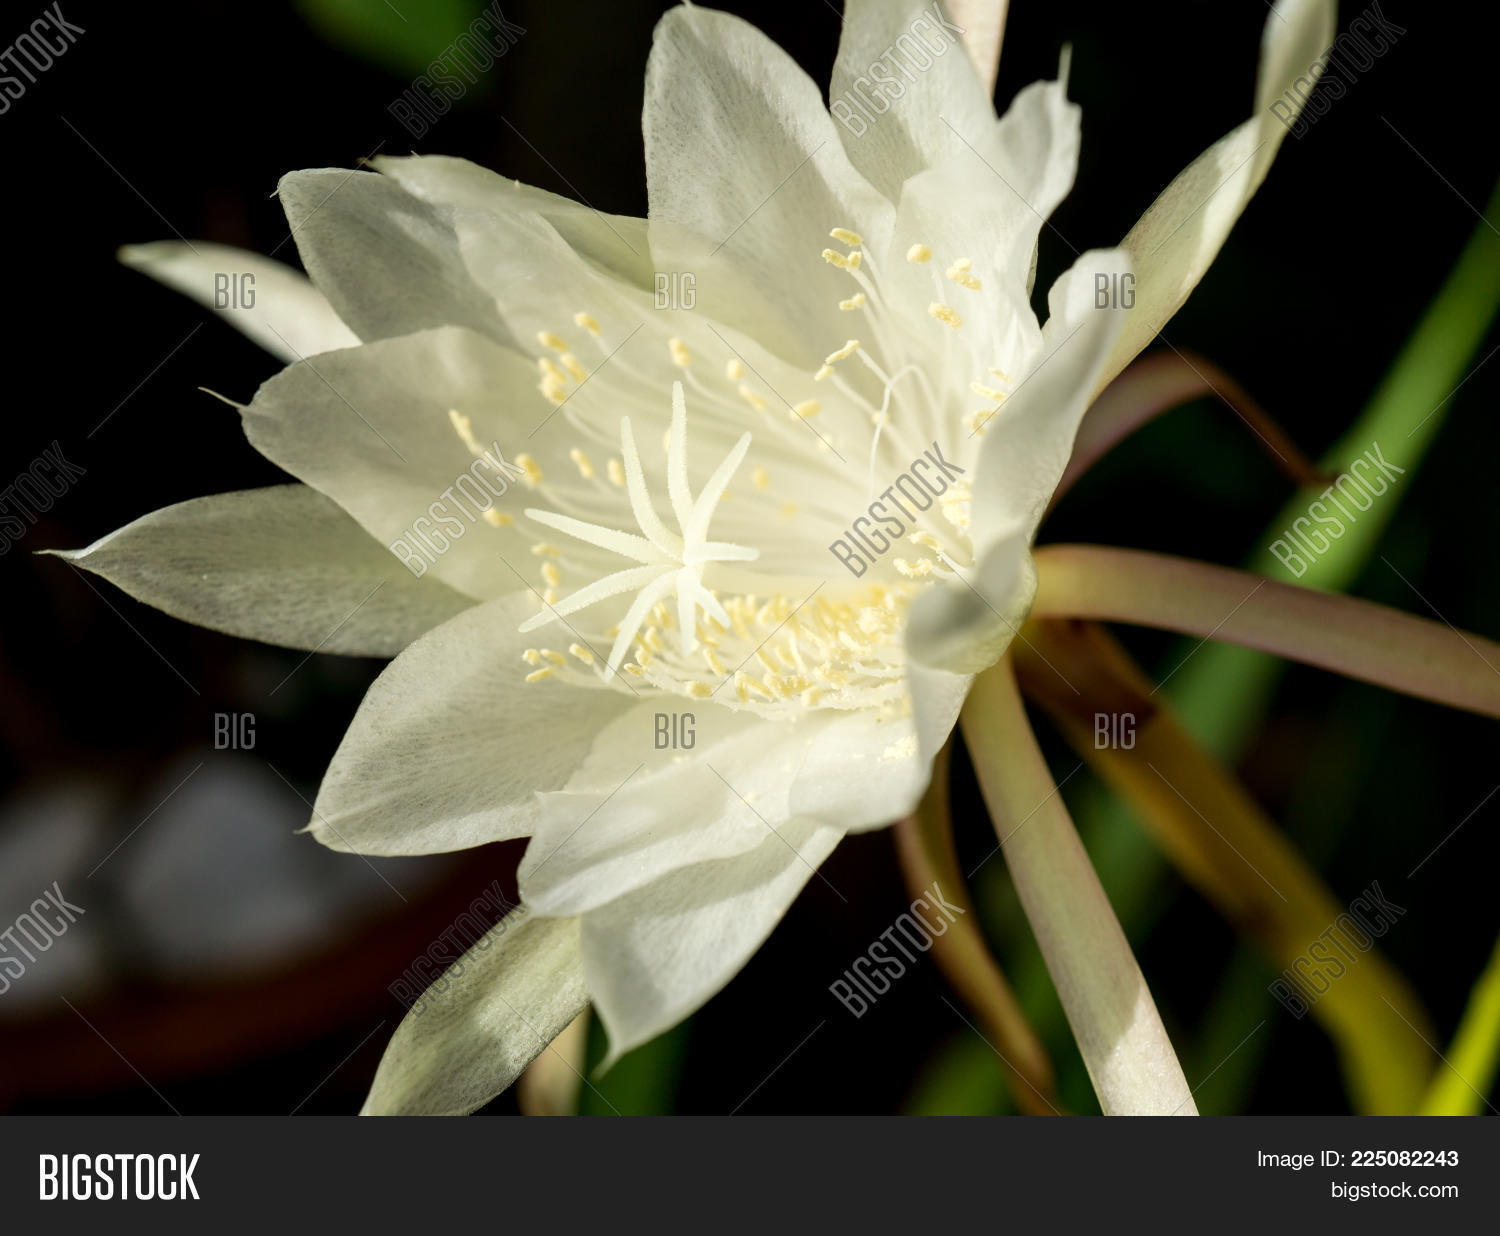 Macro white flower image photo free trial bigstock macro white flower queen of night epiphyllum oxypetalum nocturnal very fragrant flower blooms at night mightylinksfo